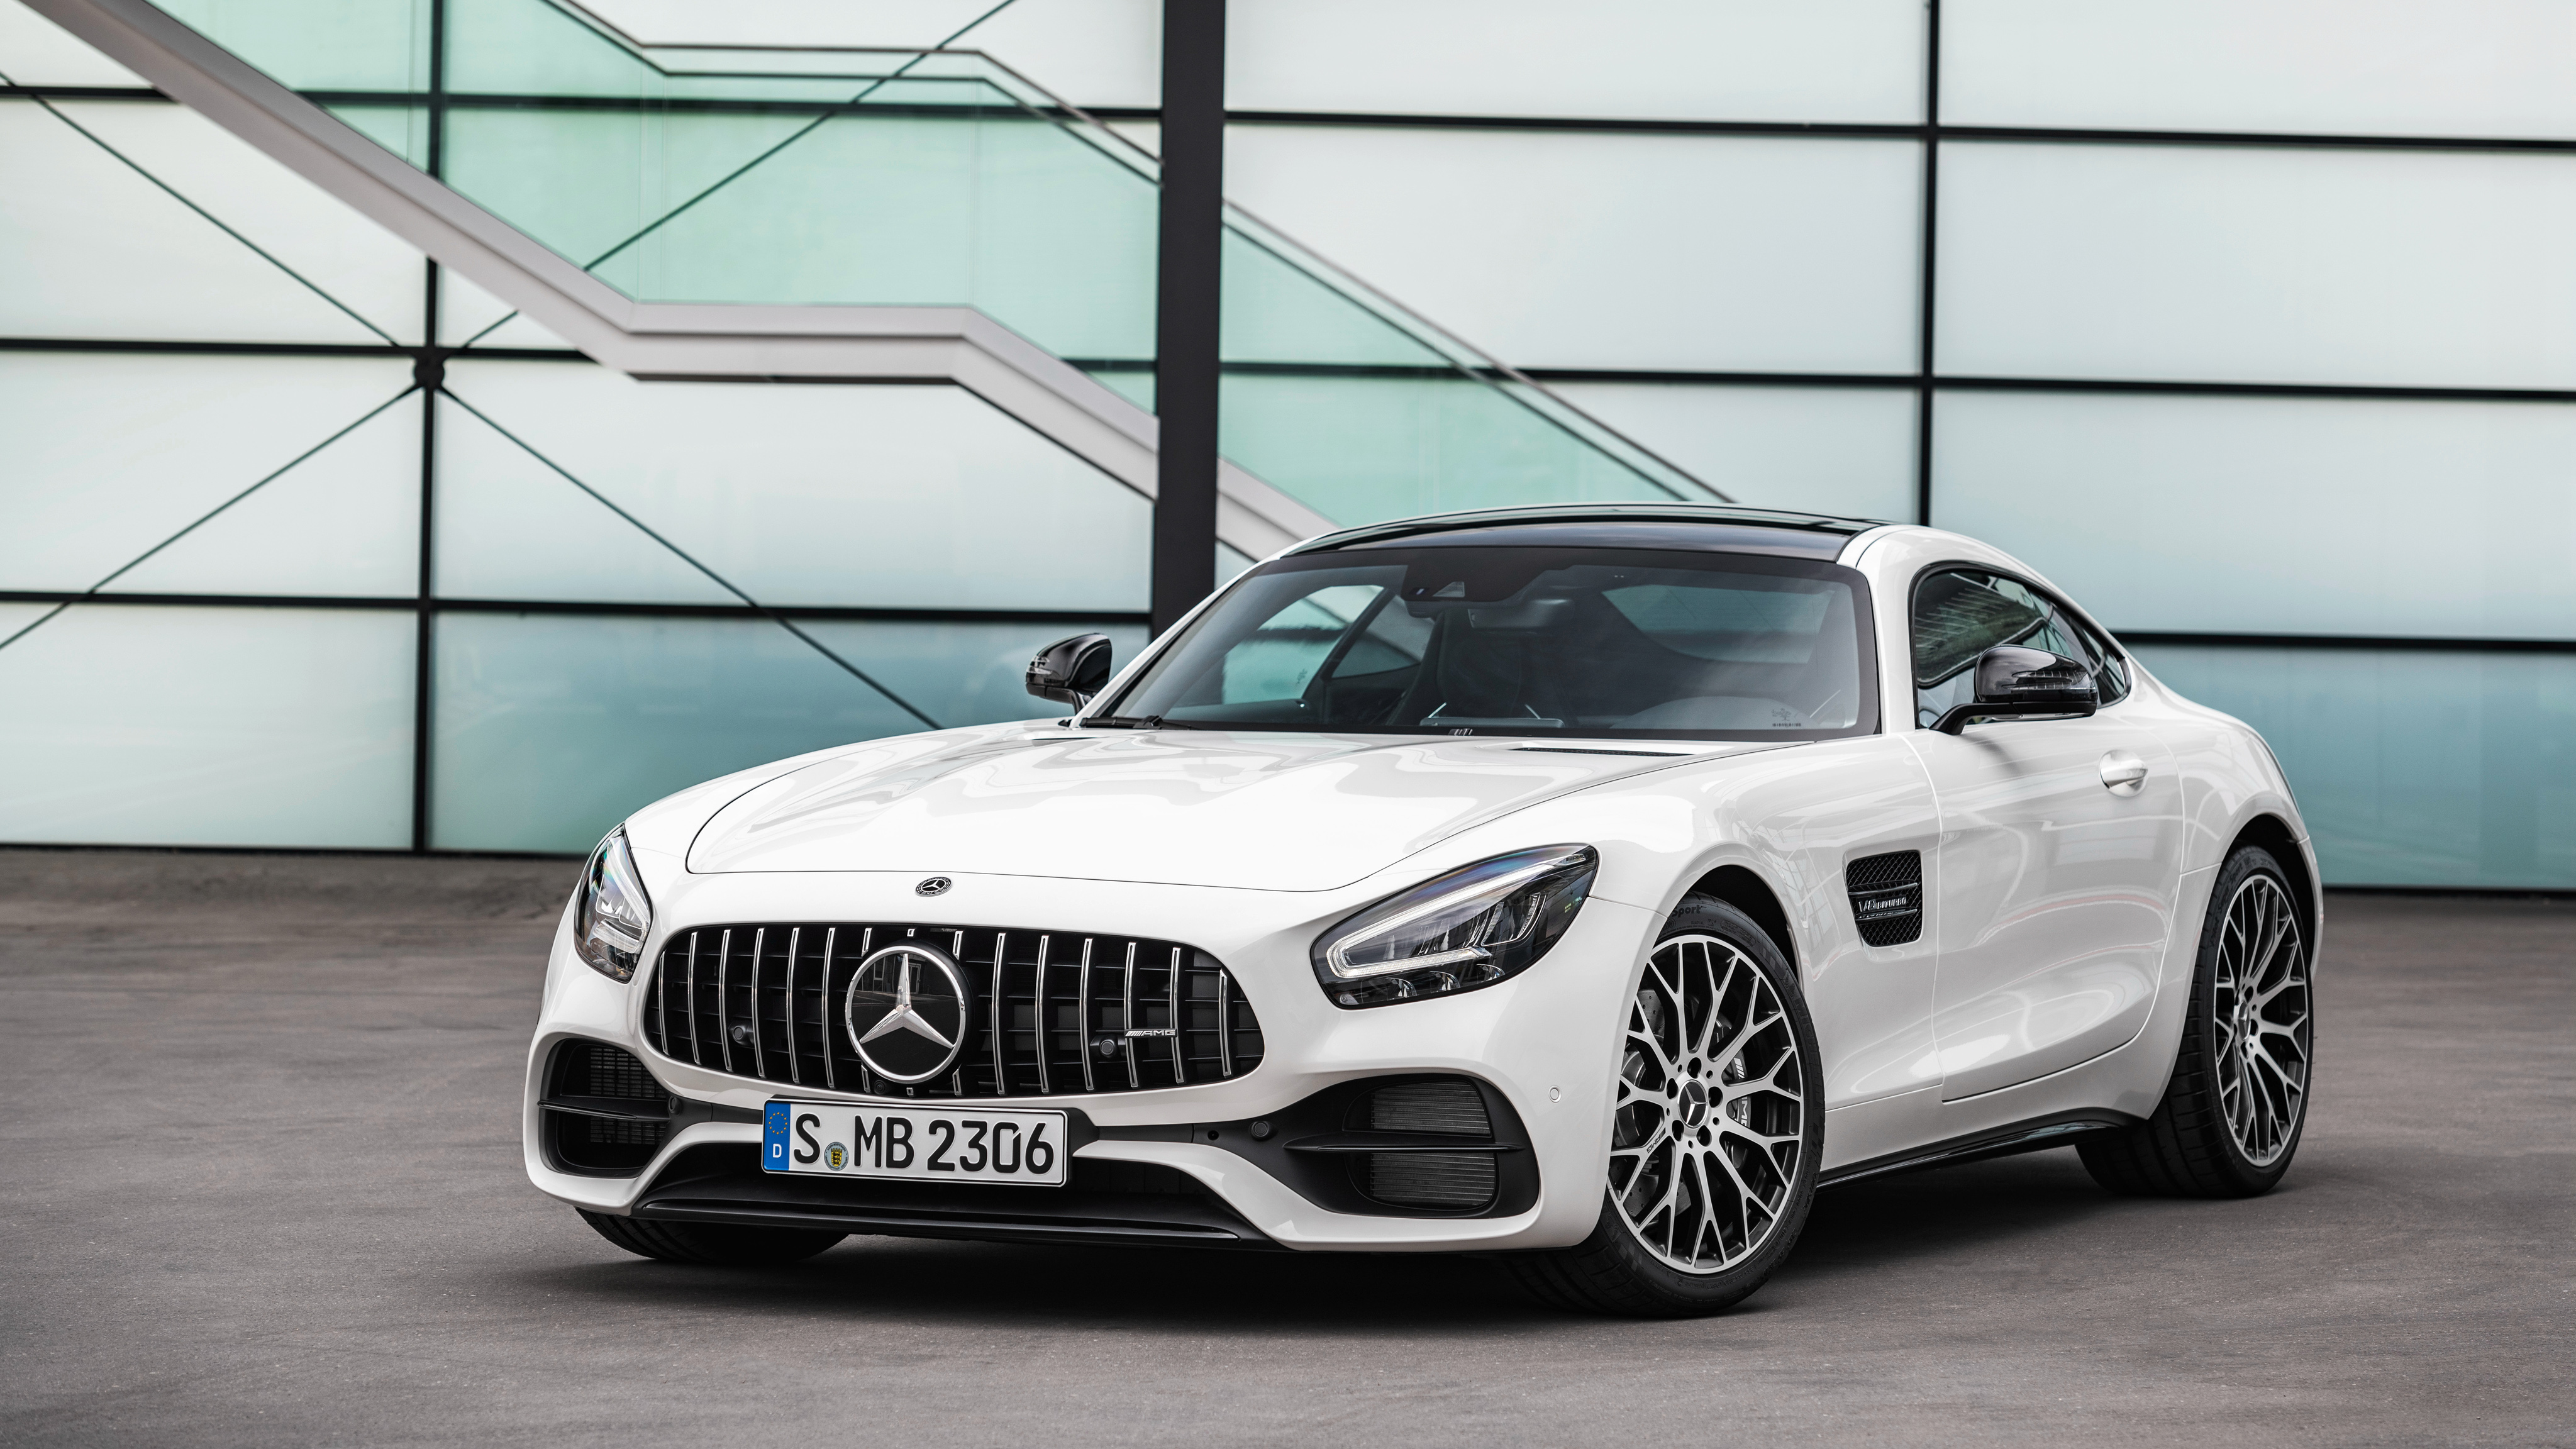 mercedes amg gt 2019 4k wallpaper hd car wallpapers id. Black Bedroom Furniture Sets. Home Design Ideas